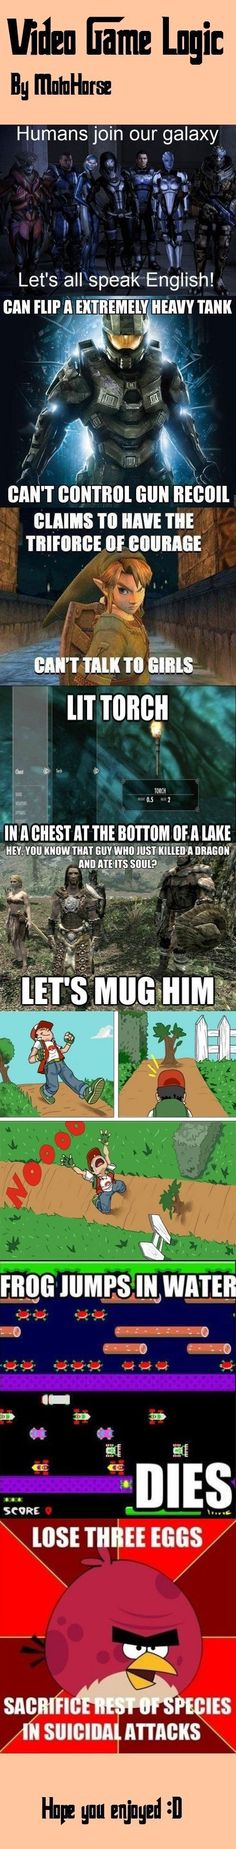 Video game logic LOL it's funny cause' it's true. The little things that make video games so so funny LOL again Video Game Logic, Video Games Funny, Funny Games, Video Game Quotes, King's Quest, Mundo Dos Games, Video Humour, Nintendo, Pokemon